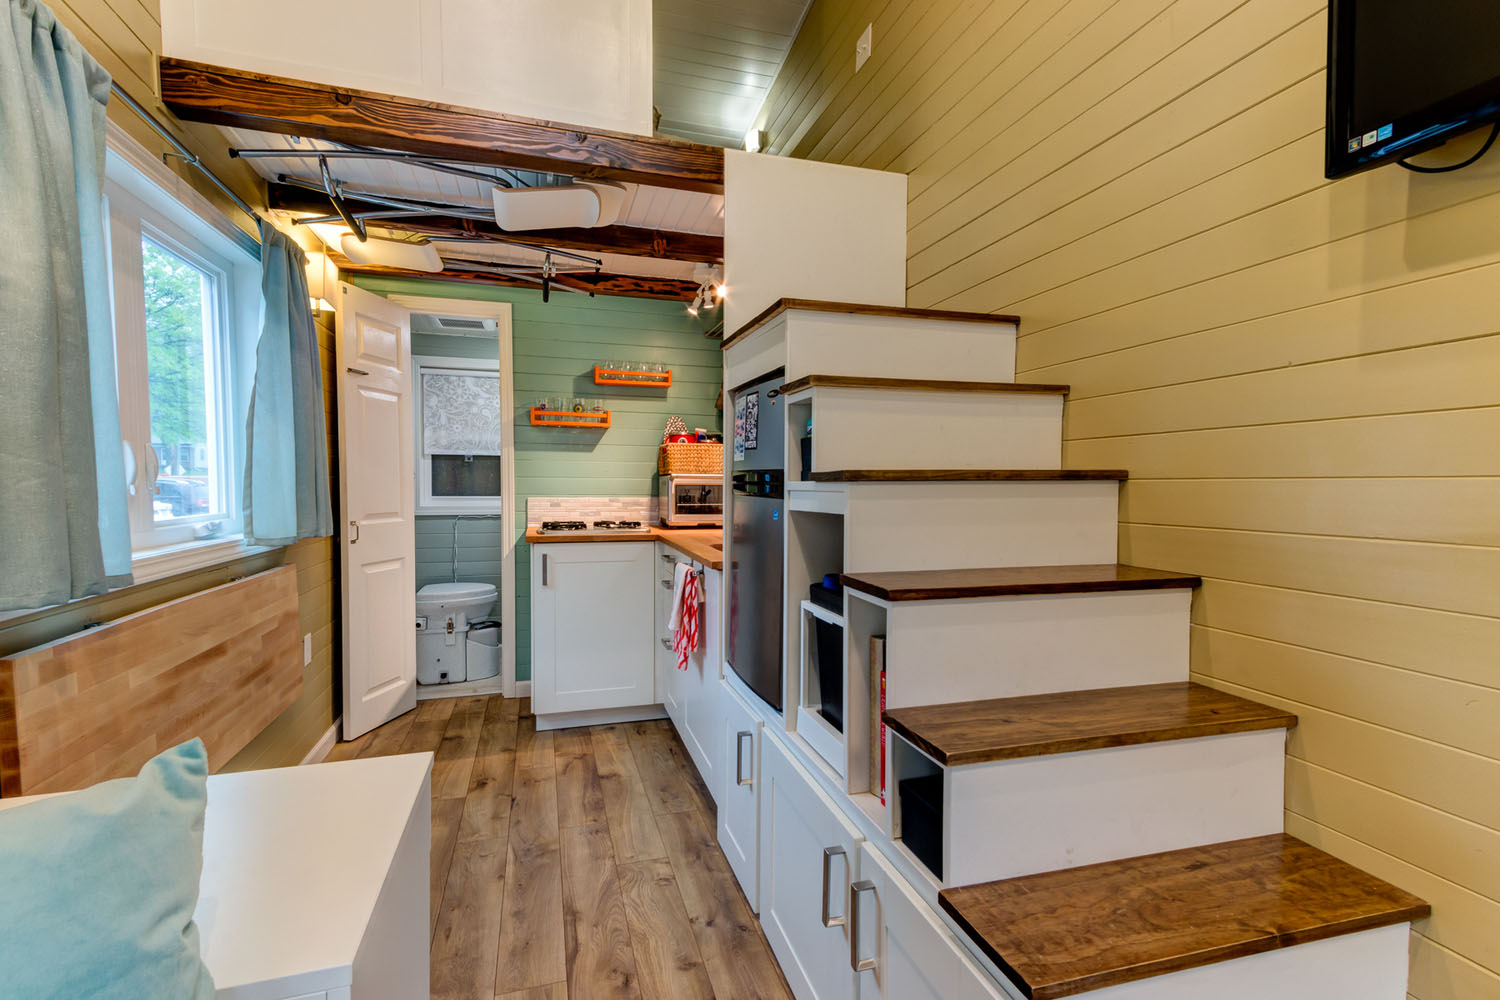 tiny house interior with storage under the staircase - Tiny House Interior